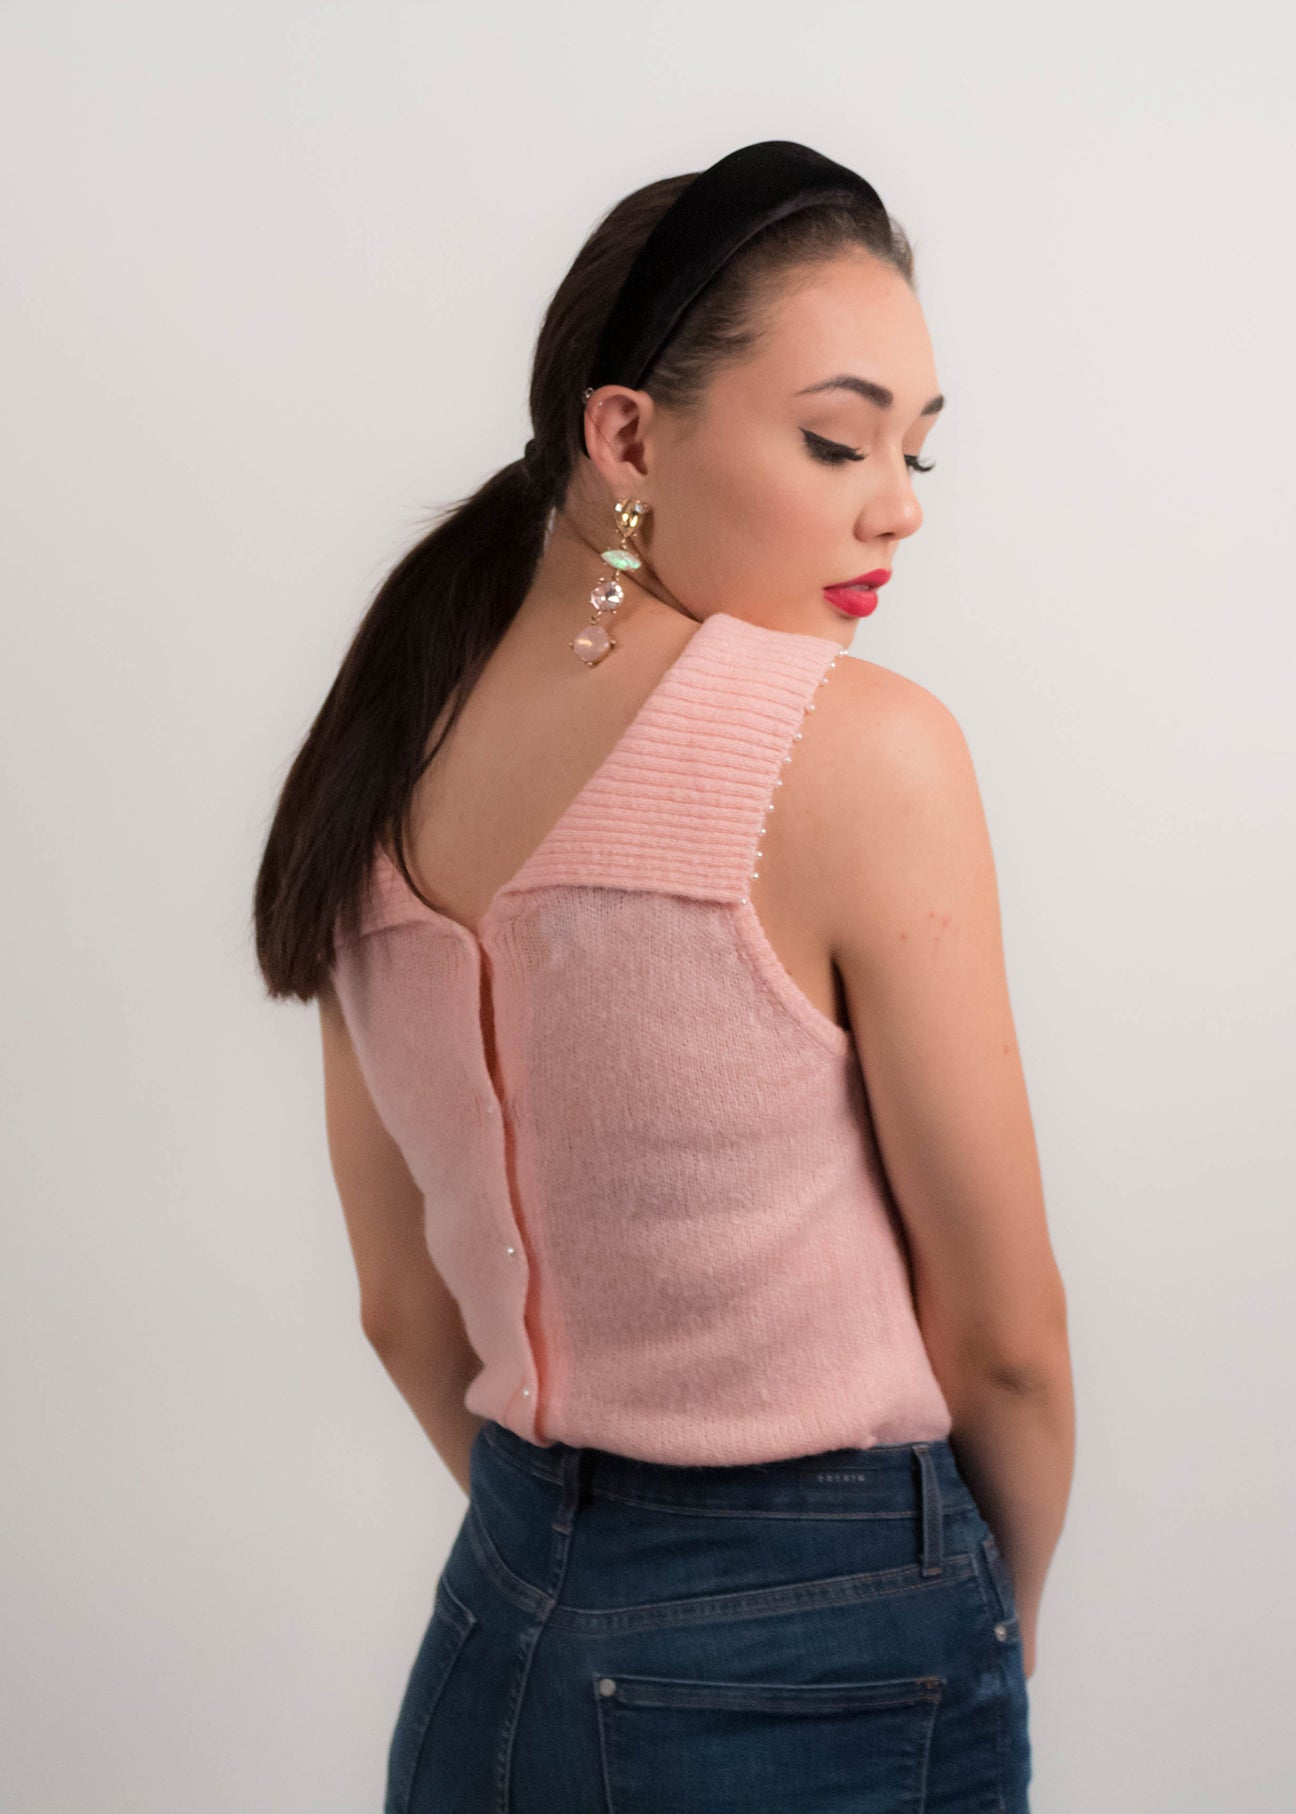 80s Low Collar Pink Knit Top